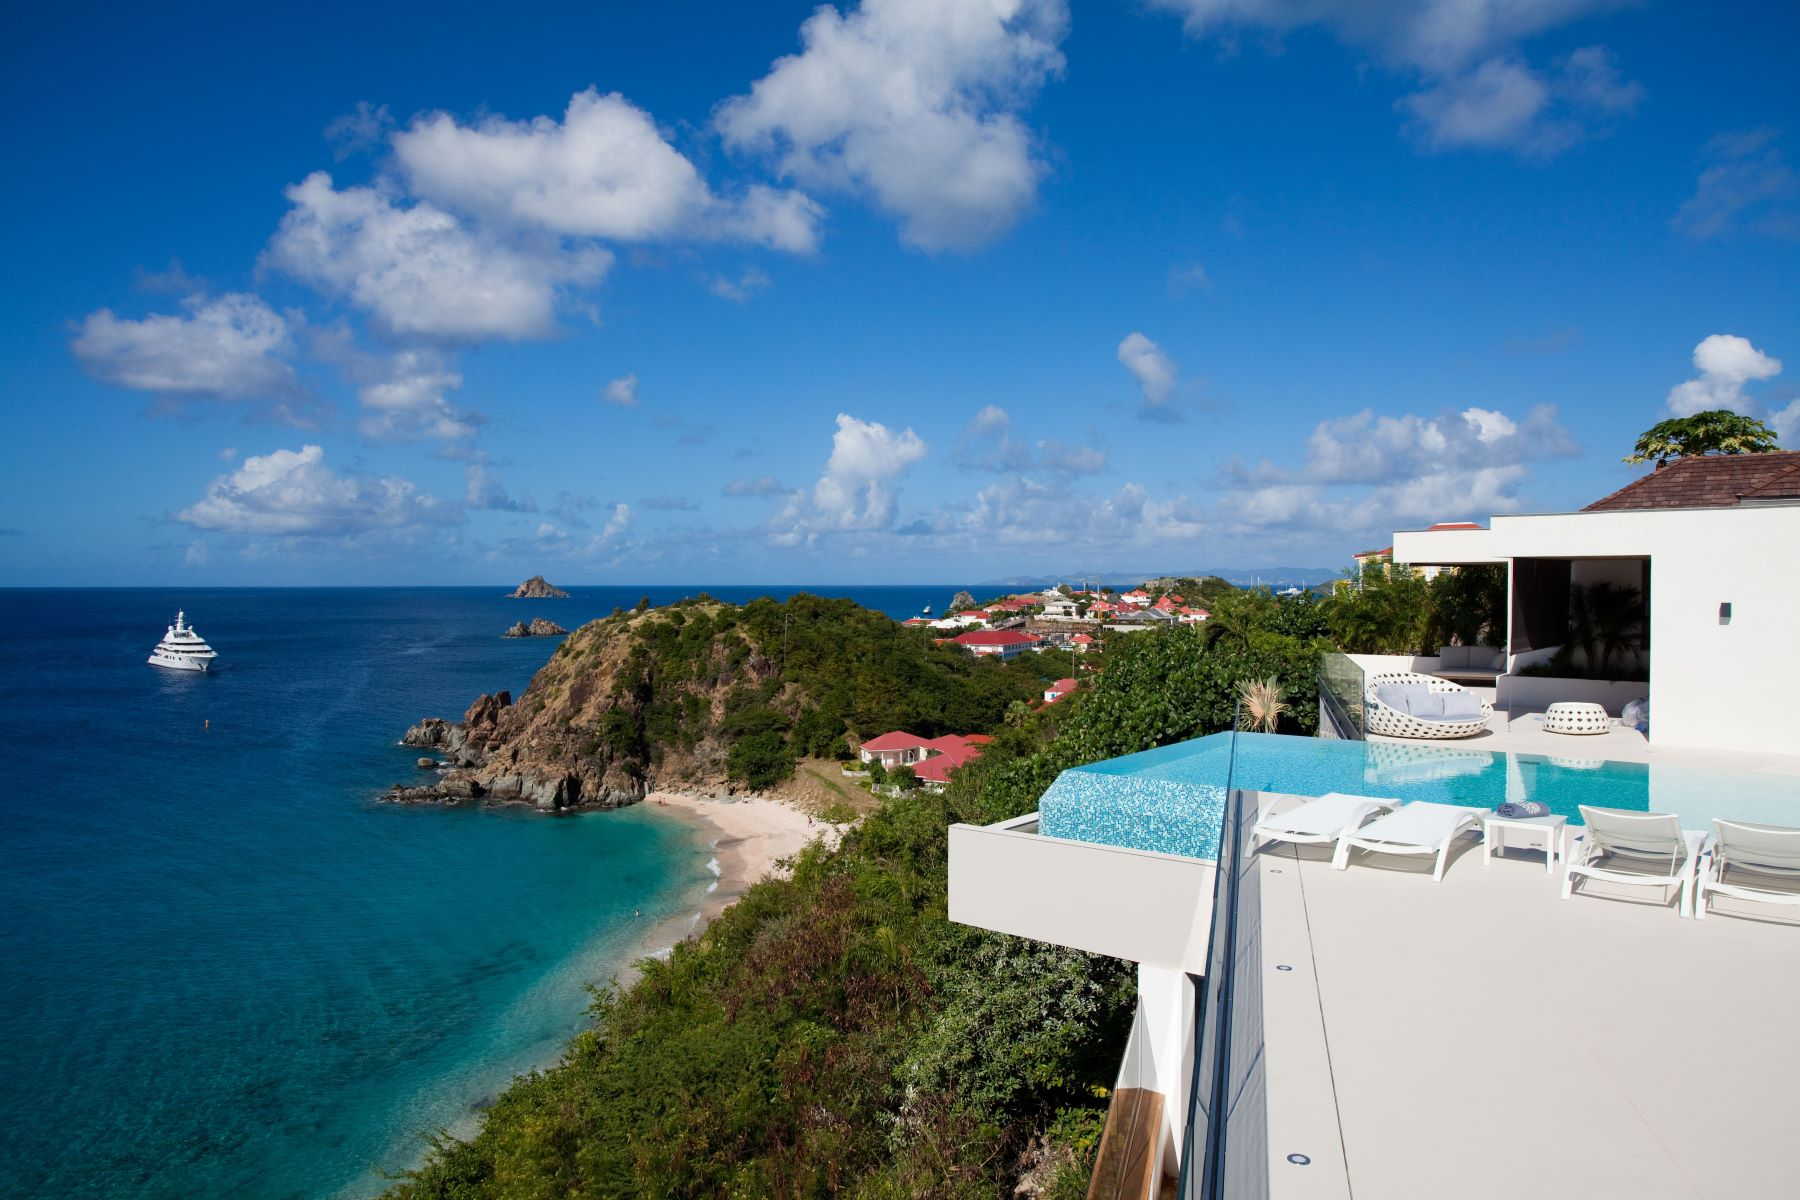 Single Family Homes for Sale at Villa Vitti Lurin Lurin, Cities In St. Barthelemy 97133 St. Barthelemy